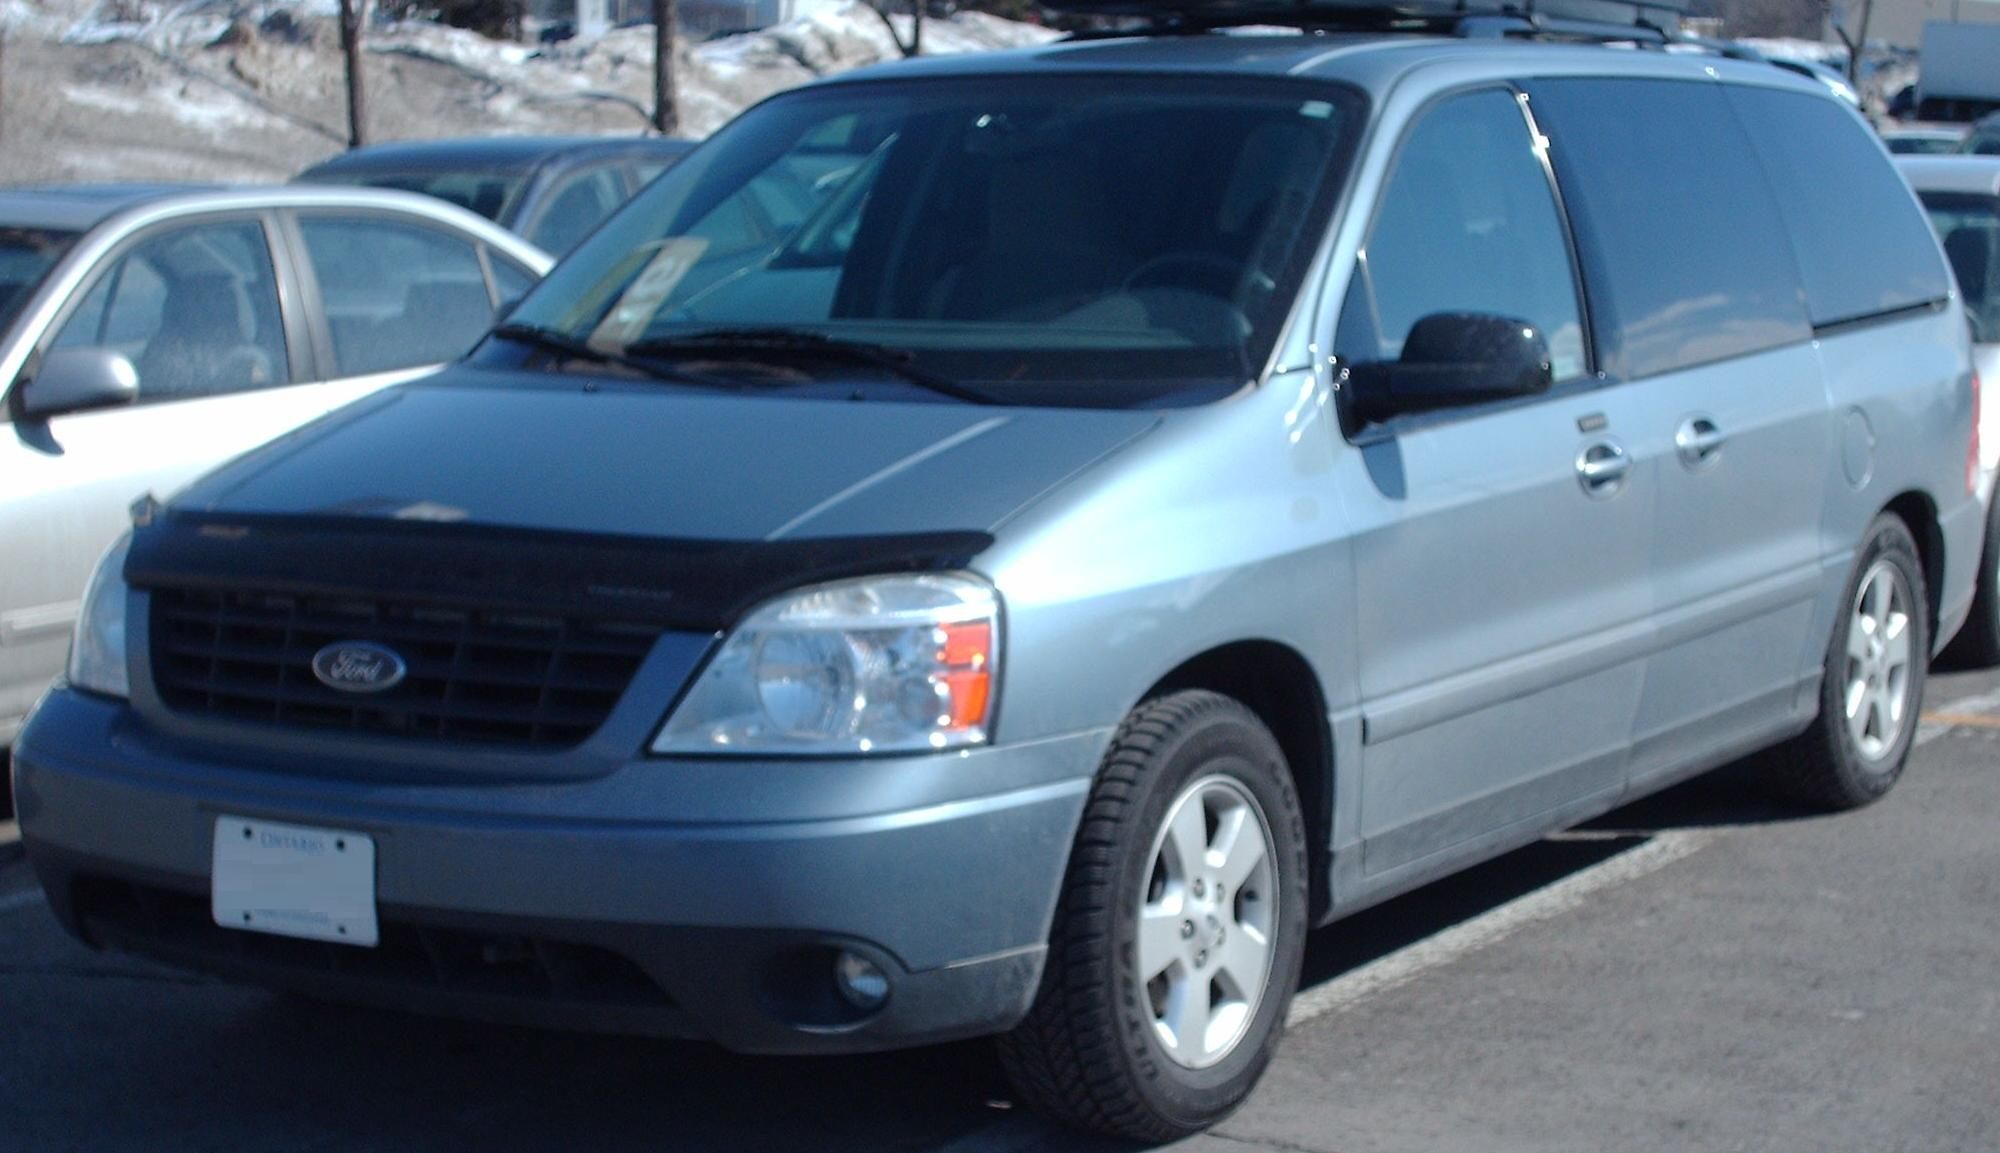 Ford Freestar #2